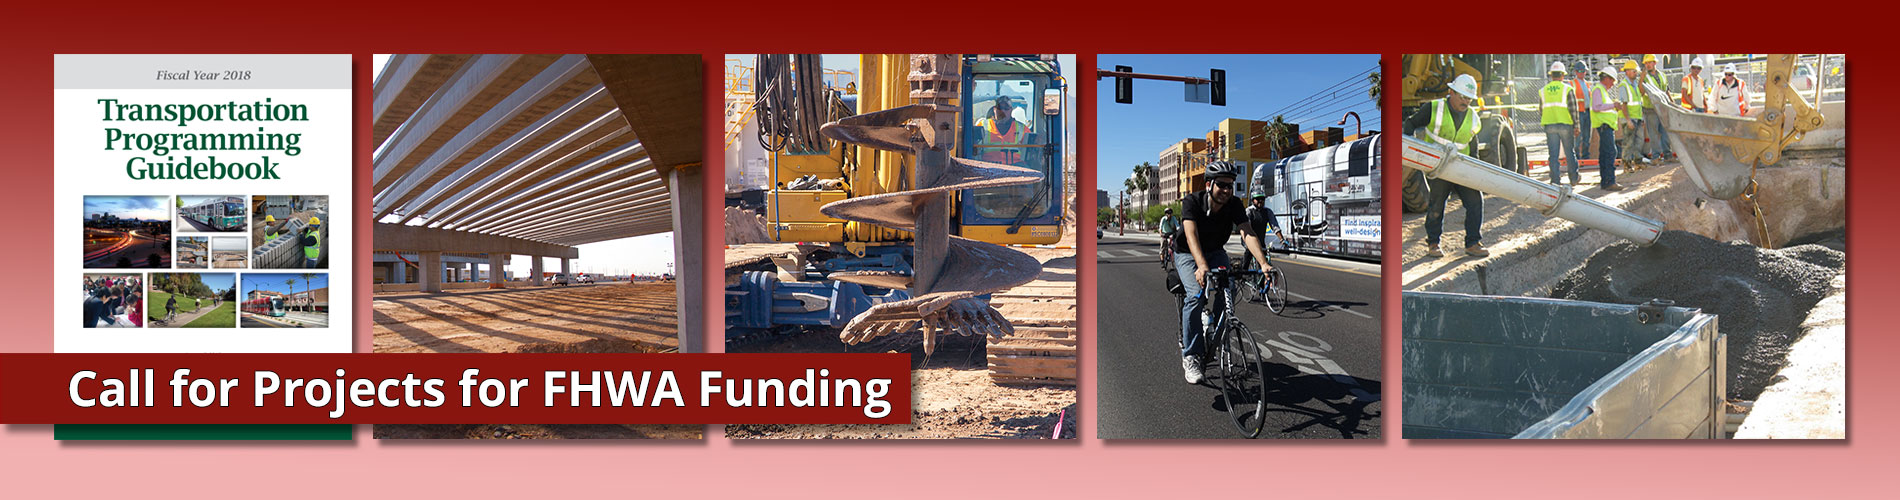 Call-for-Projects-for-FHWA-Funding